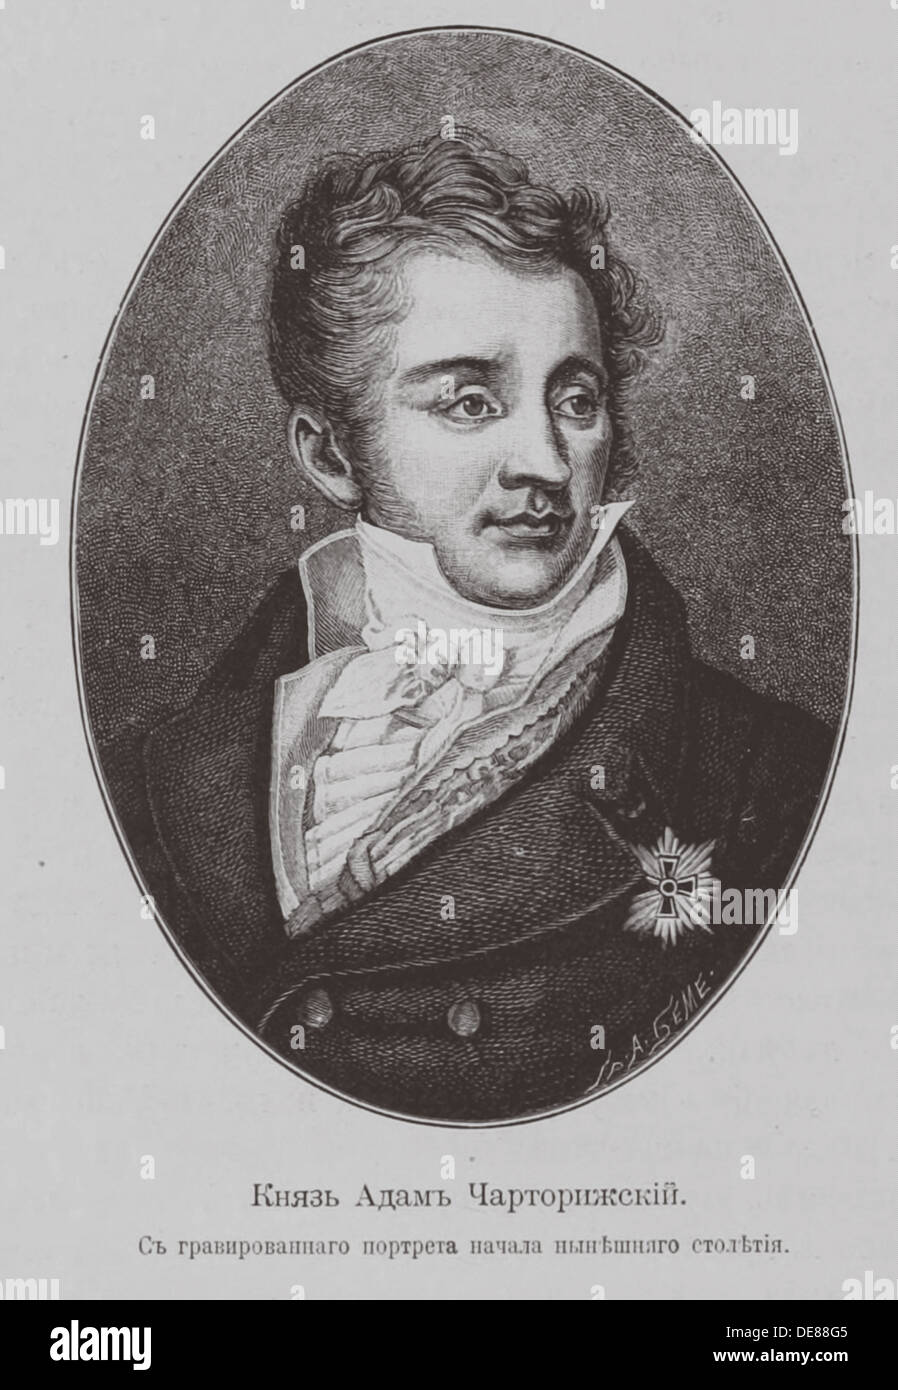 Moldavian princess Cantemir Maria and Peter 1: biography, history and interesting facts